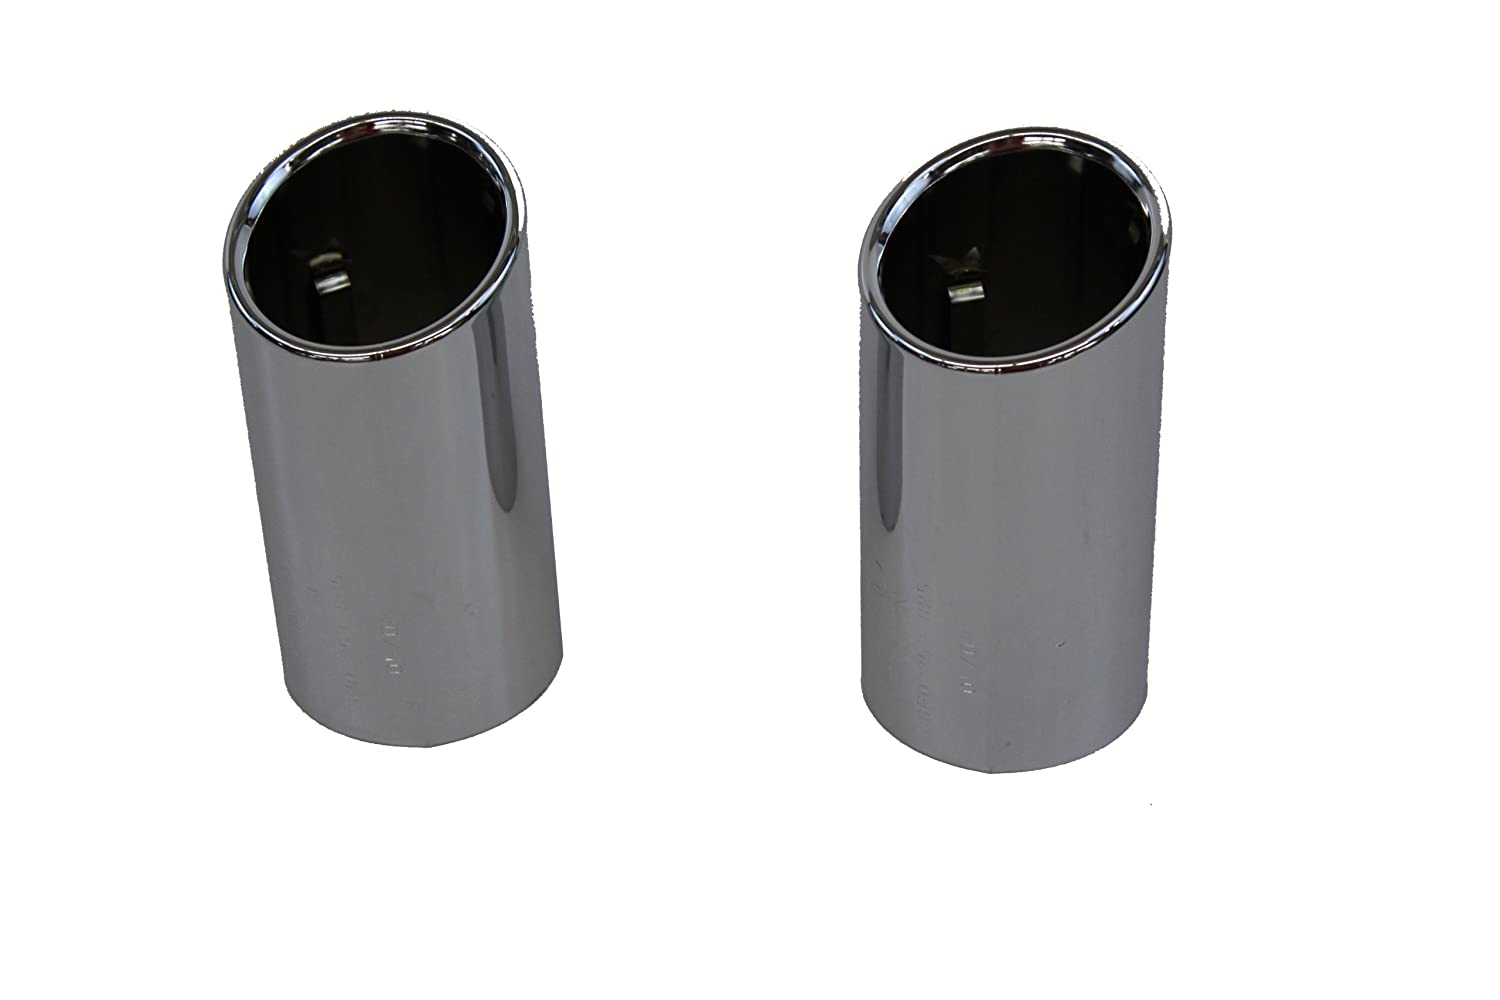 AUDI Genuine Accessories 8P0071761 Stainless Steel Exhaust Tip for A3